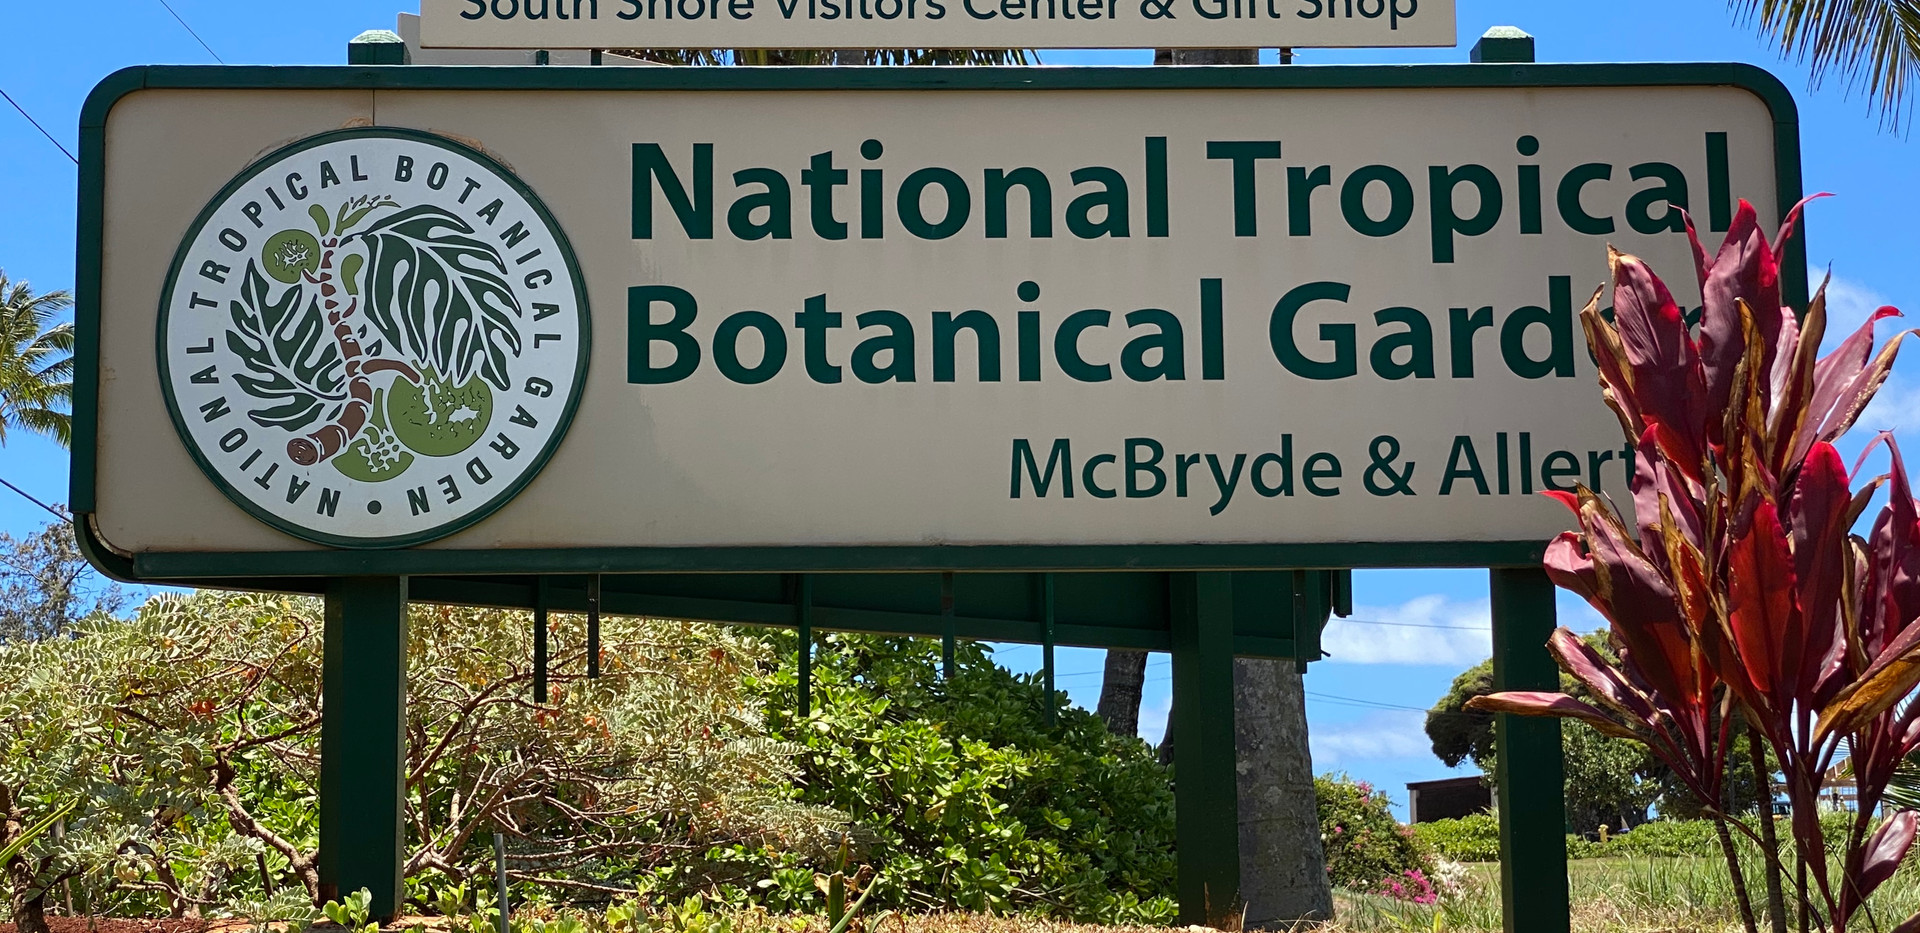 One of the National Tropical Botanical Gardens